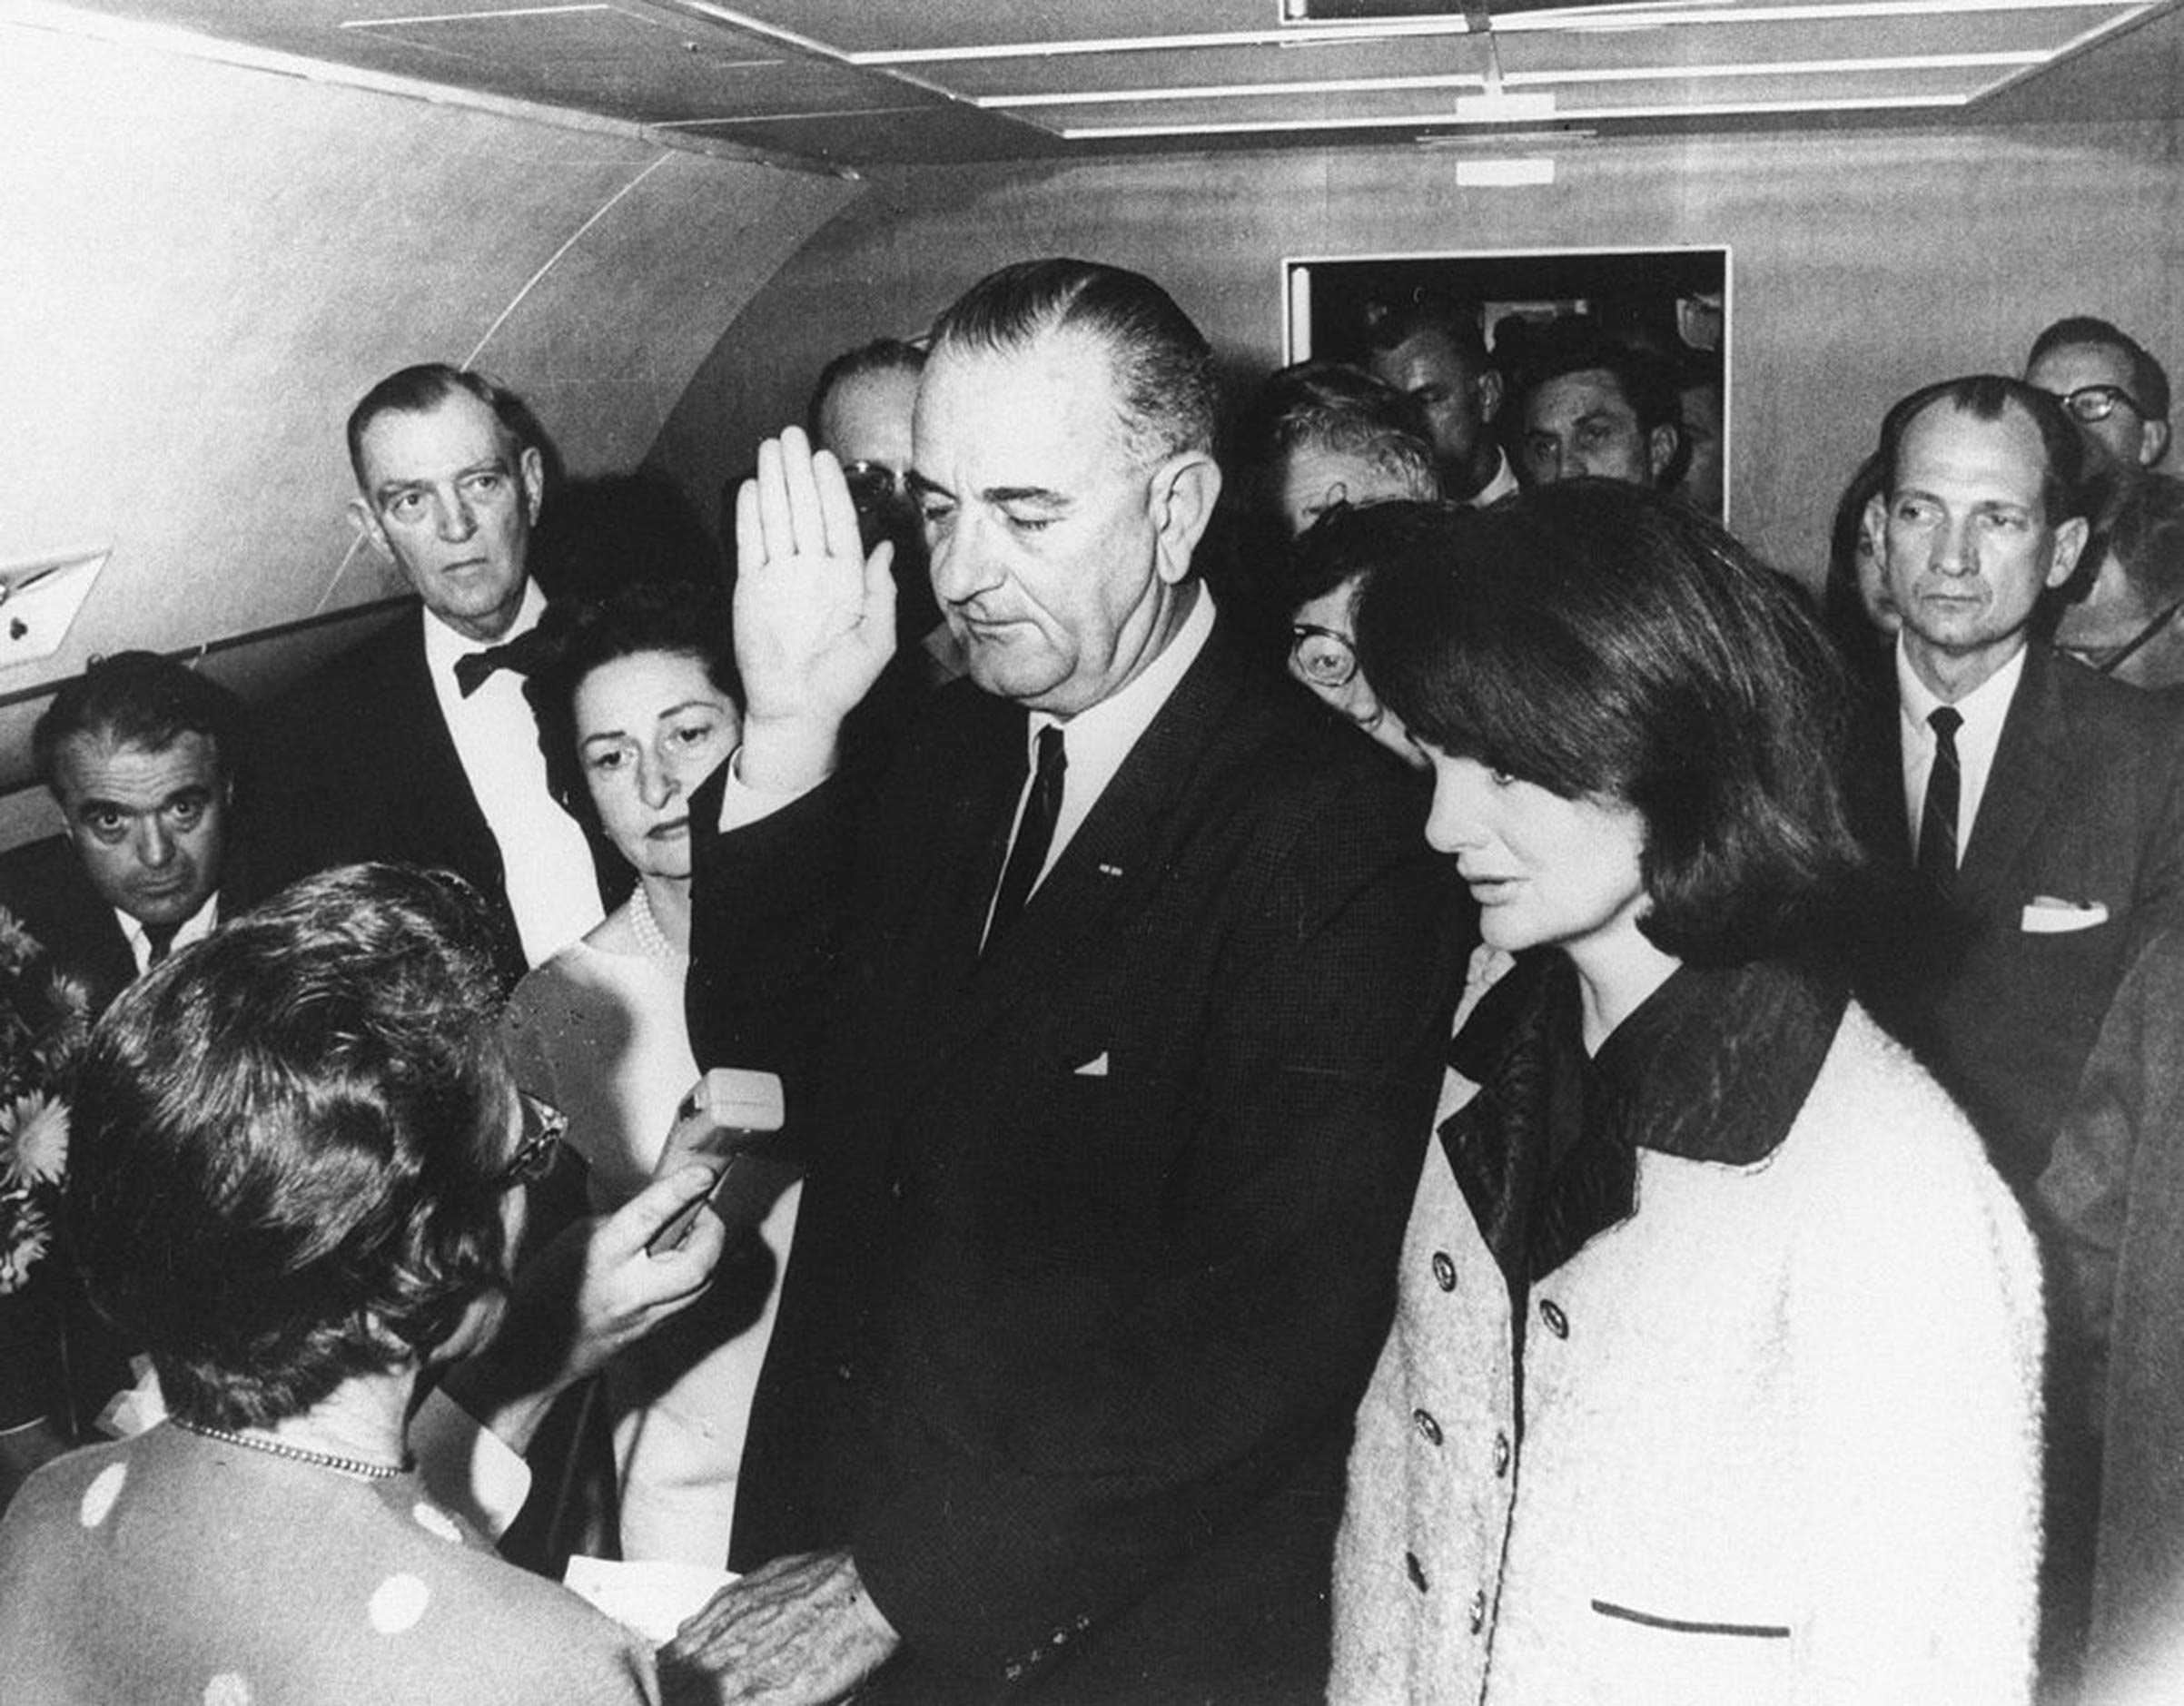 Lyndon B. Johnson is sworn in as President by federal Judge Sarah T. Hughes on Air Force One on Nov. 22, 1963, in Dallas, following the assassination of President John F. Kennedy. He's flanked by Jacqueline Kennedy (right) and wife Lady Bird Johnson (left).